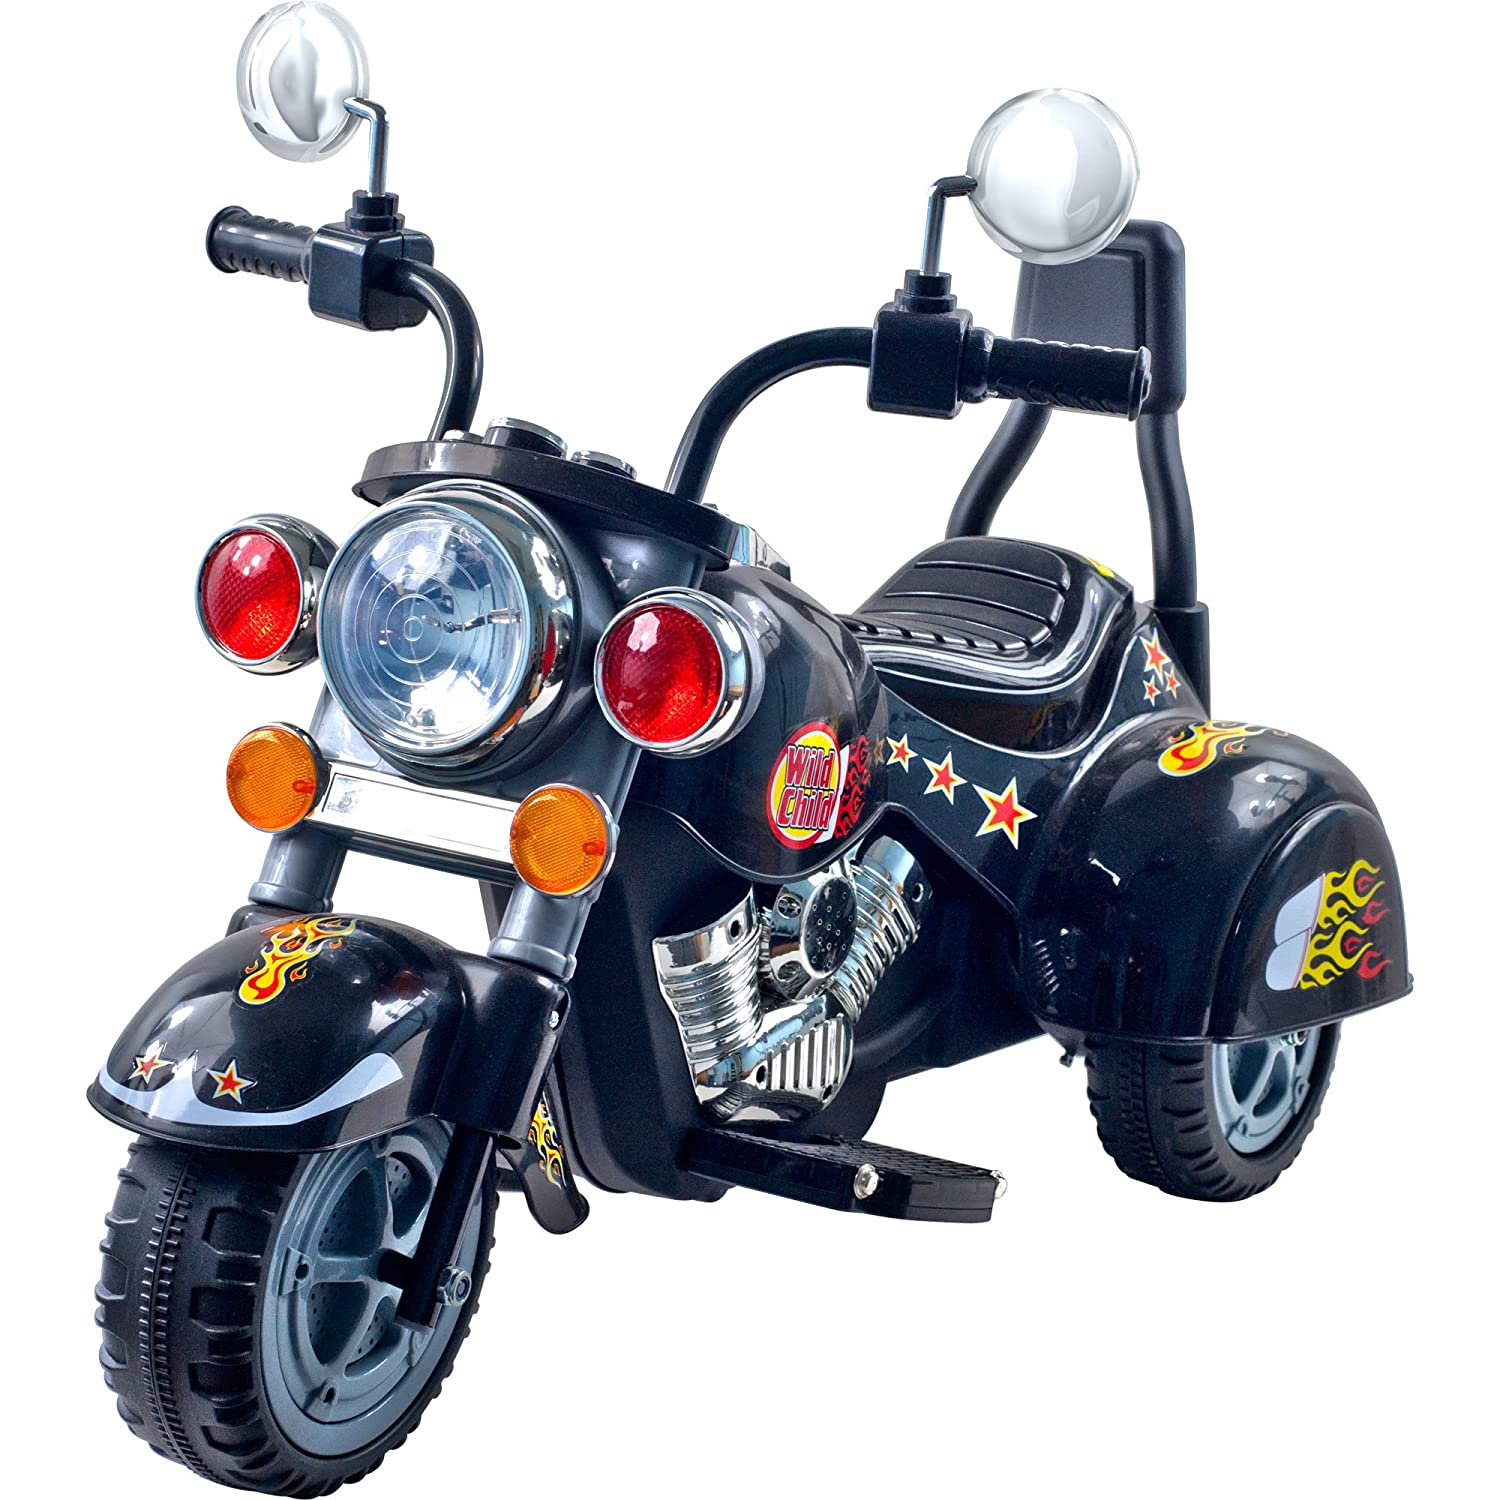 Amazon 3 Wheel Chopper Trike Motorcycle for Kids Battery